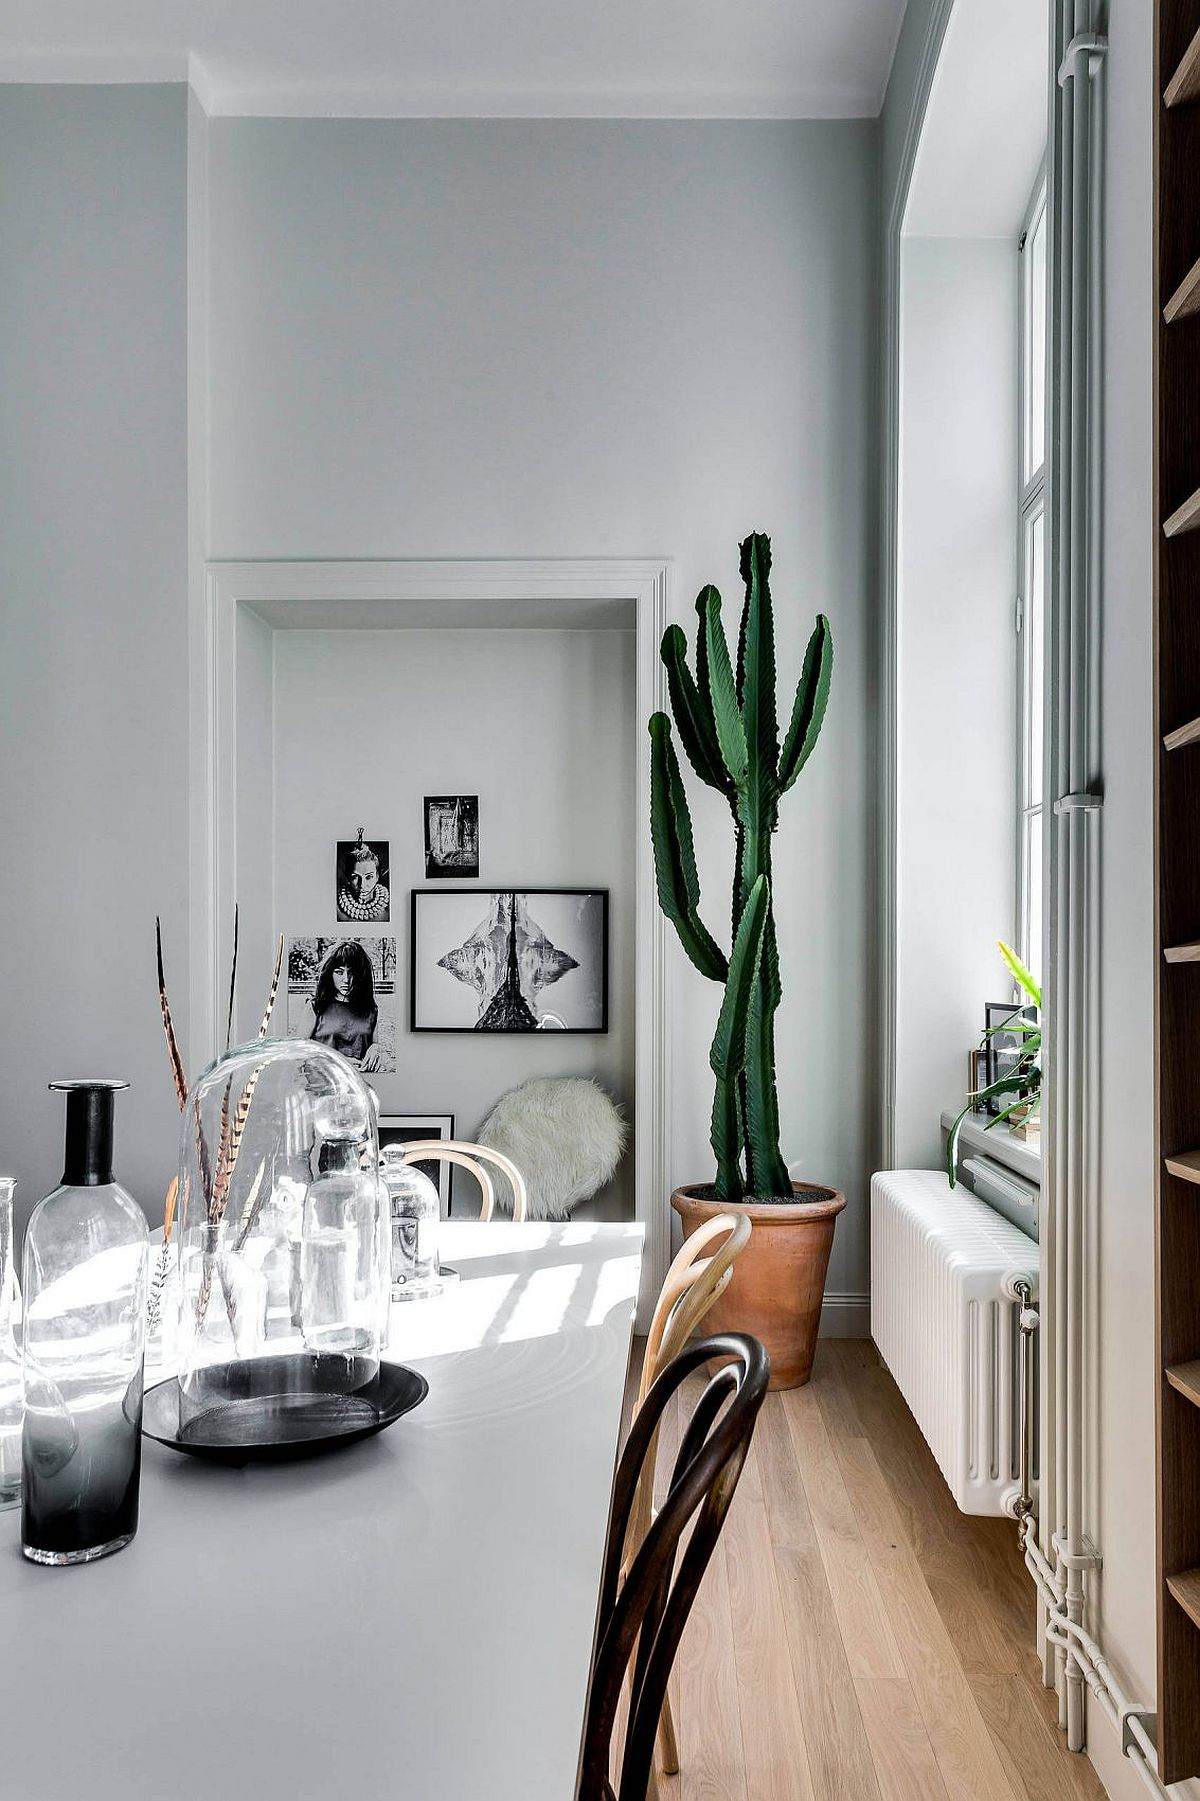 Indoor plant in the corner adds color to the Scandinavian dining space